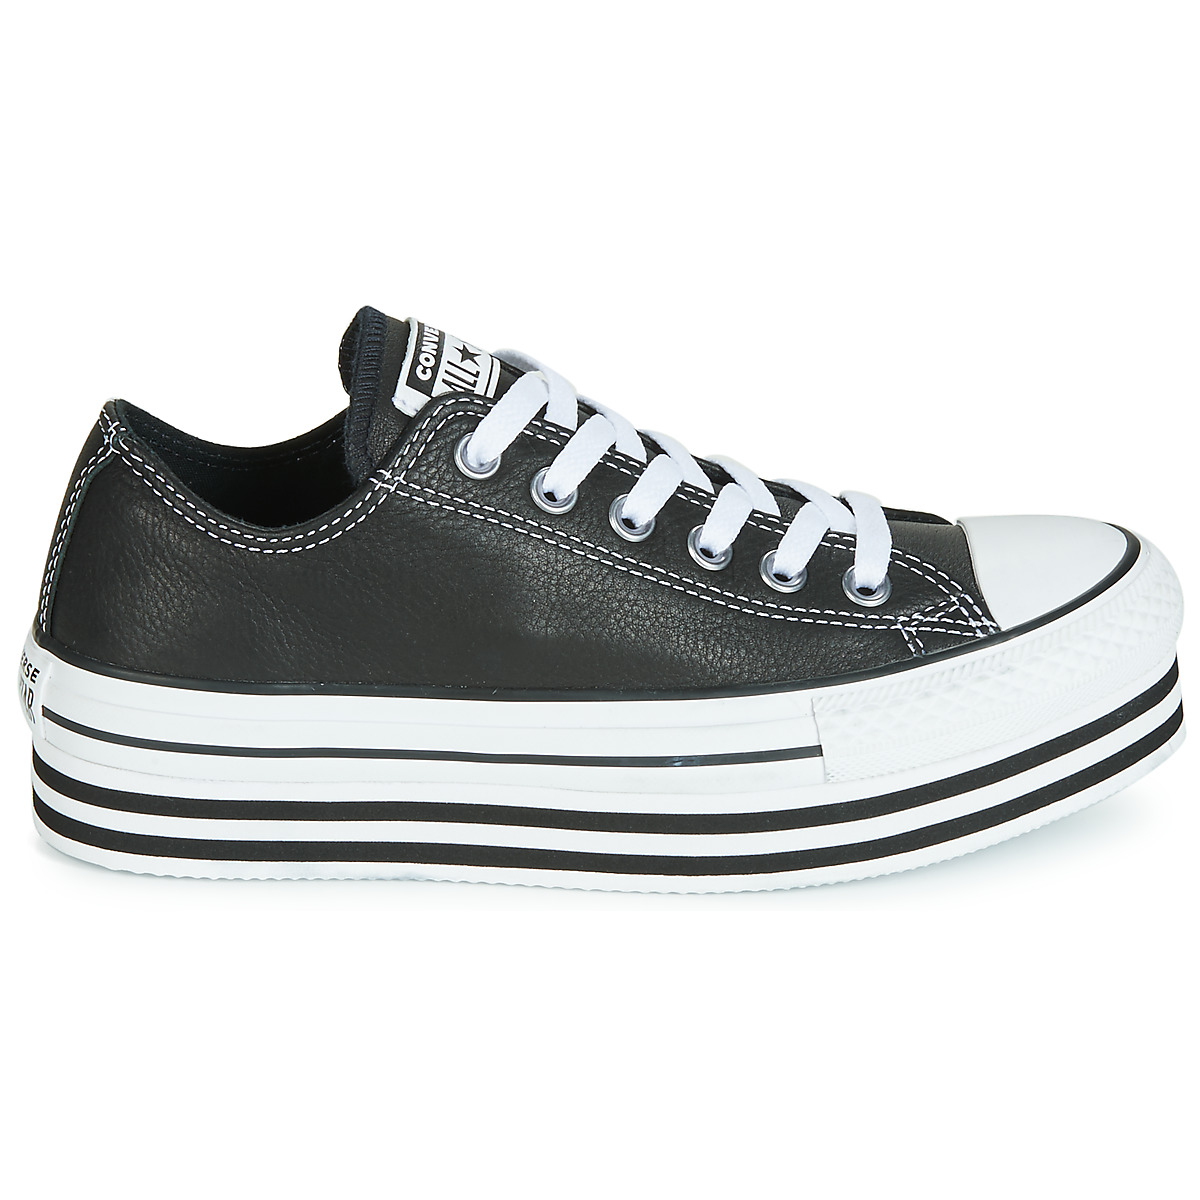 Converse CHUCK TAYLOR ALL STAR LAYER BOTTOM LEATHER OX Nero 15514206 Free Delivery OutletScarpeOnline.it